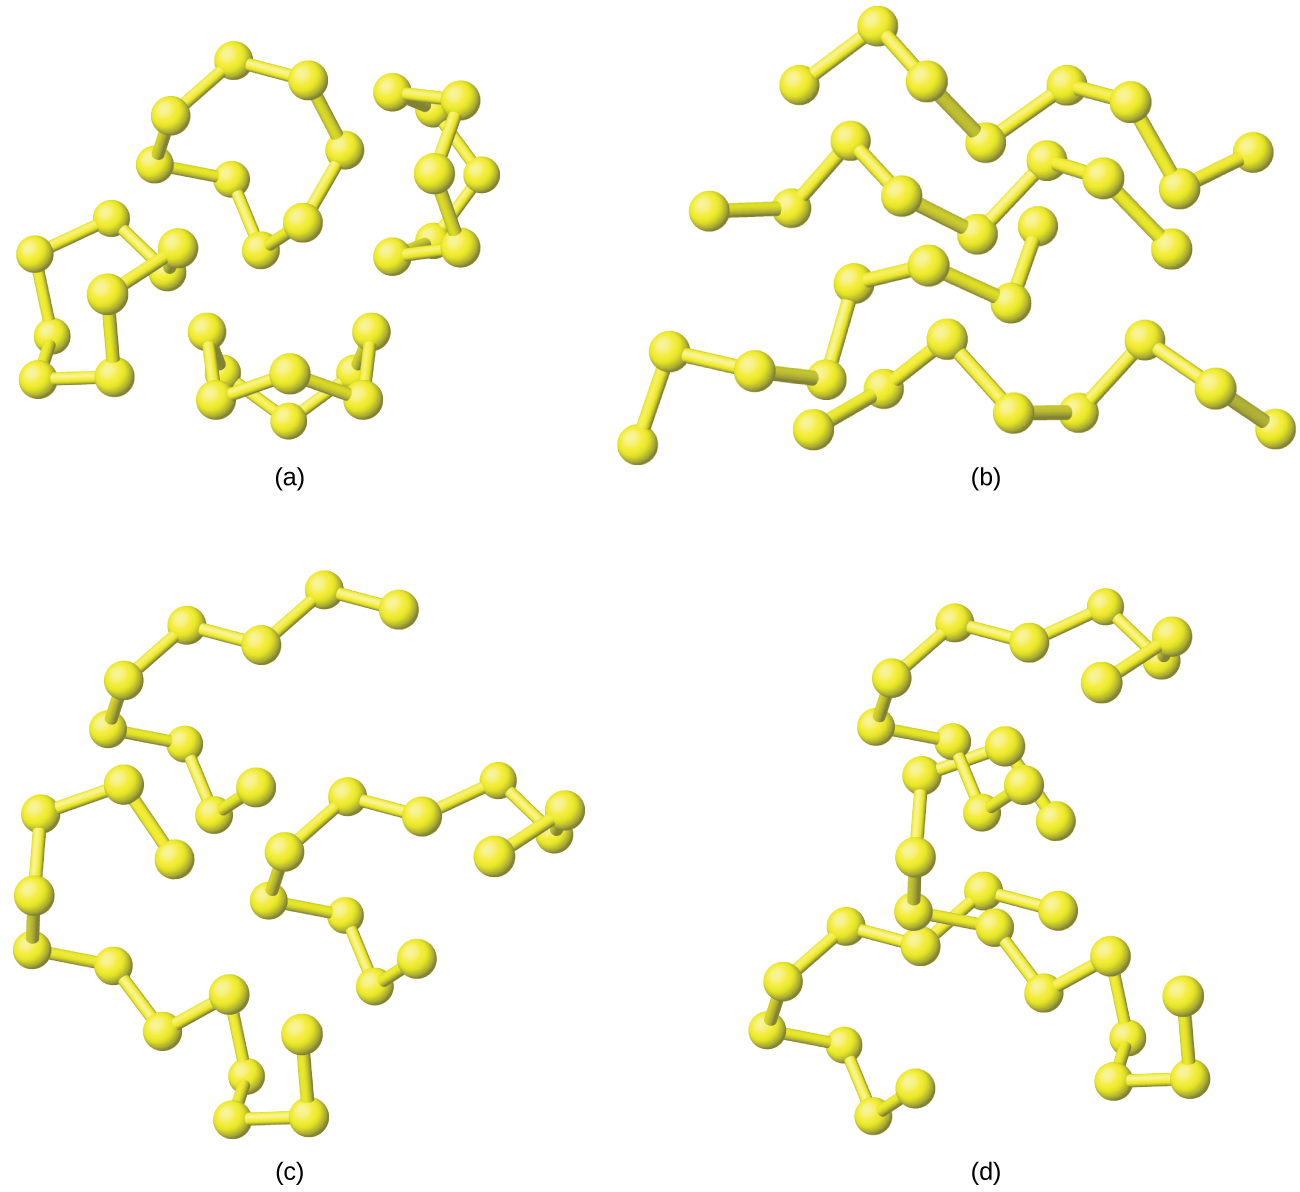 "Four diagrams are shown and labeled ""a,"" ""b,"" ""c,"" and ""d."" Diagram a shows four ring structures that are each made up of eight single bonded atoms. Diagram b shows four chains of eight atoms. Diagram c shows three chains of atoms, one composed by nine atoms, one by twelve atoms and one by eleven atoms. Diagram d shows the same three chains, but this time they are much closer together and slightly intertwined."